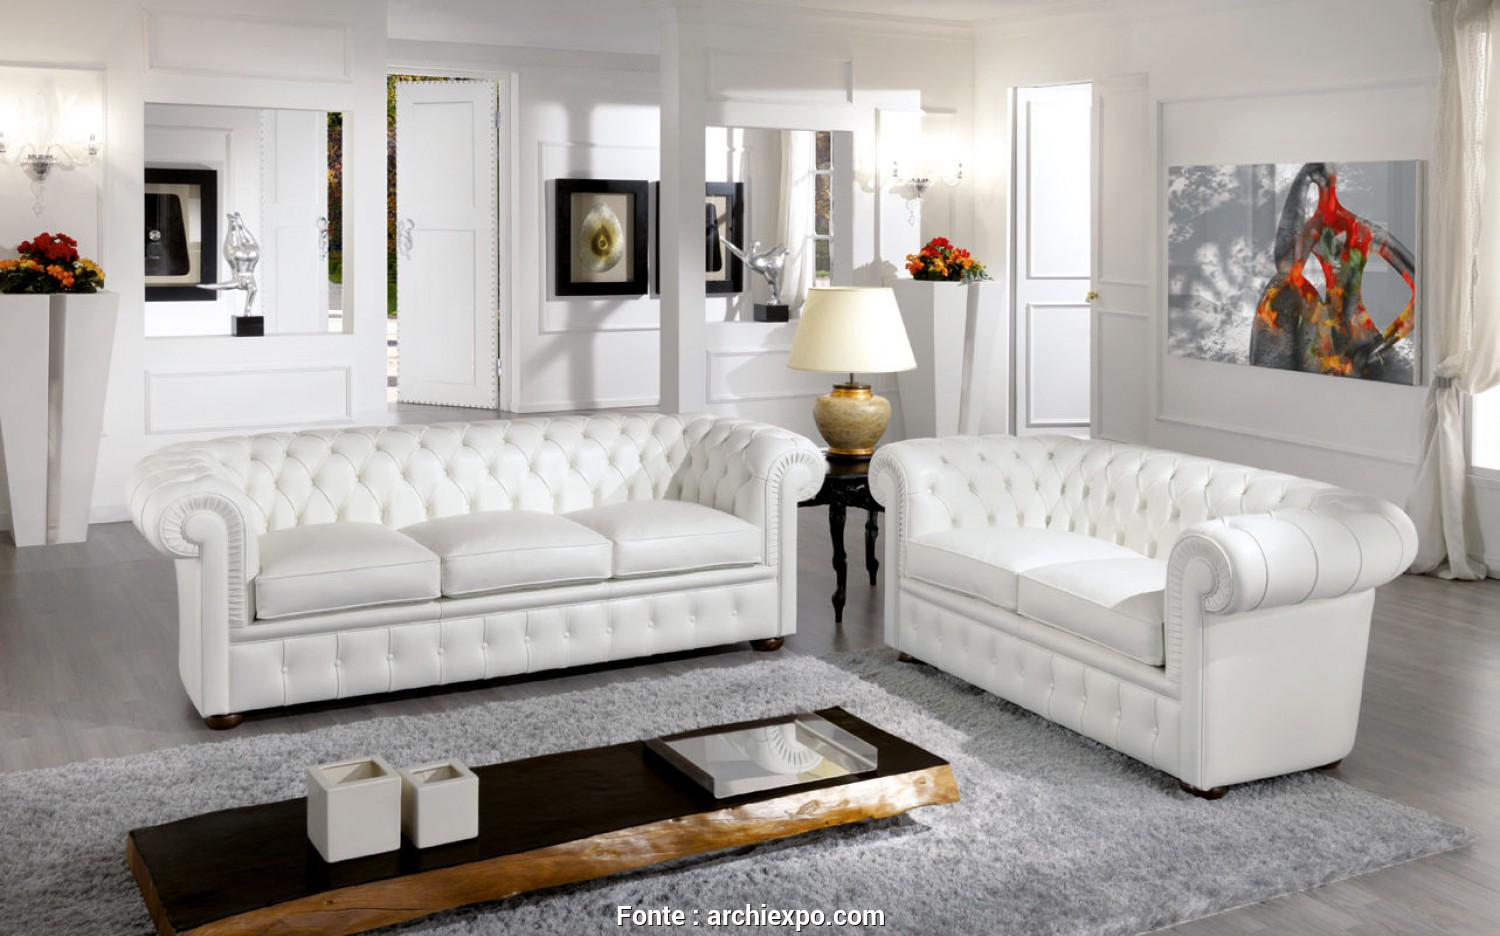 Amabile 6 Divano Chesterfield Design